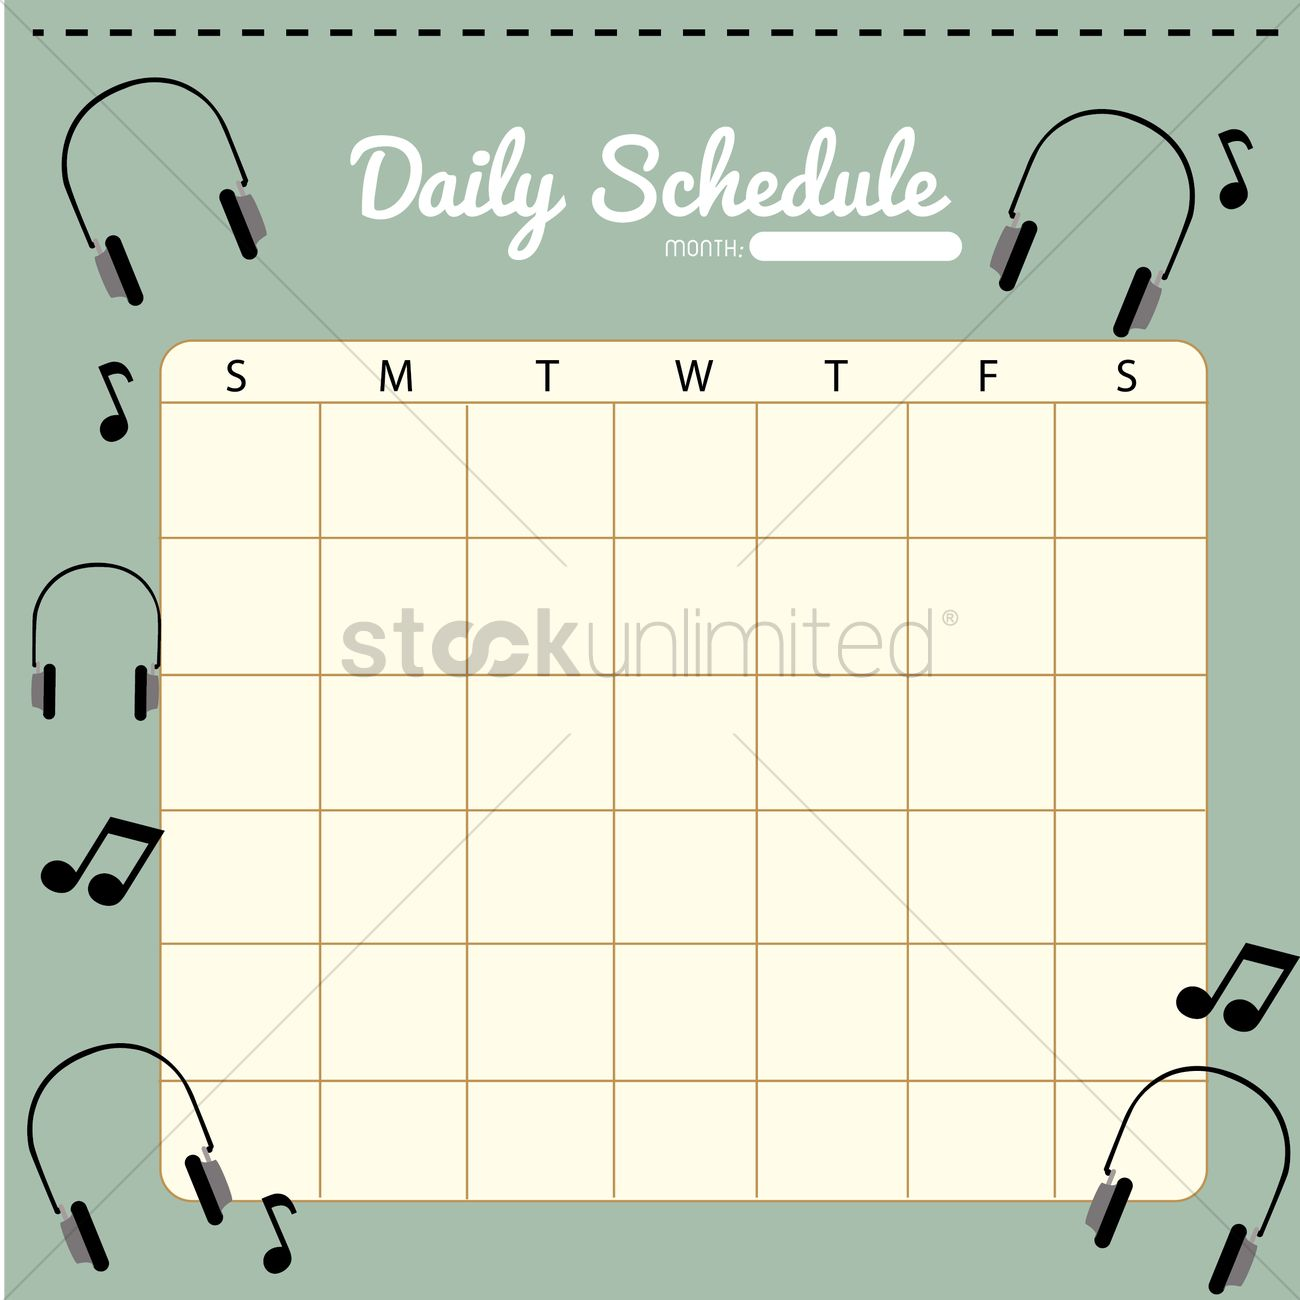 Blank Daily Planner Template Design Vector Image 1479902